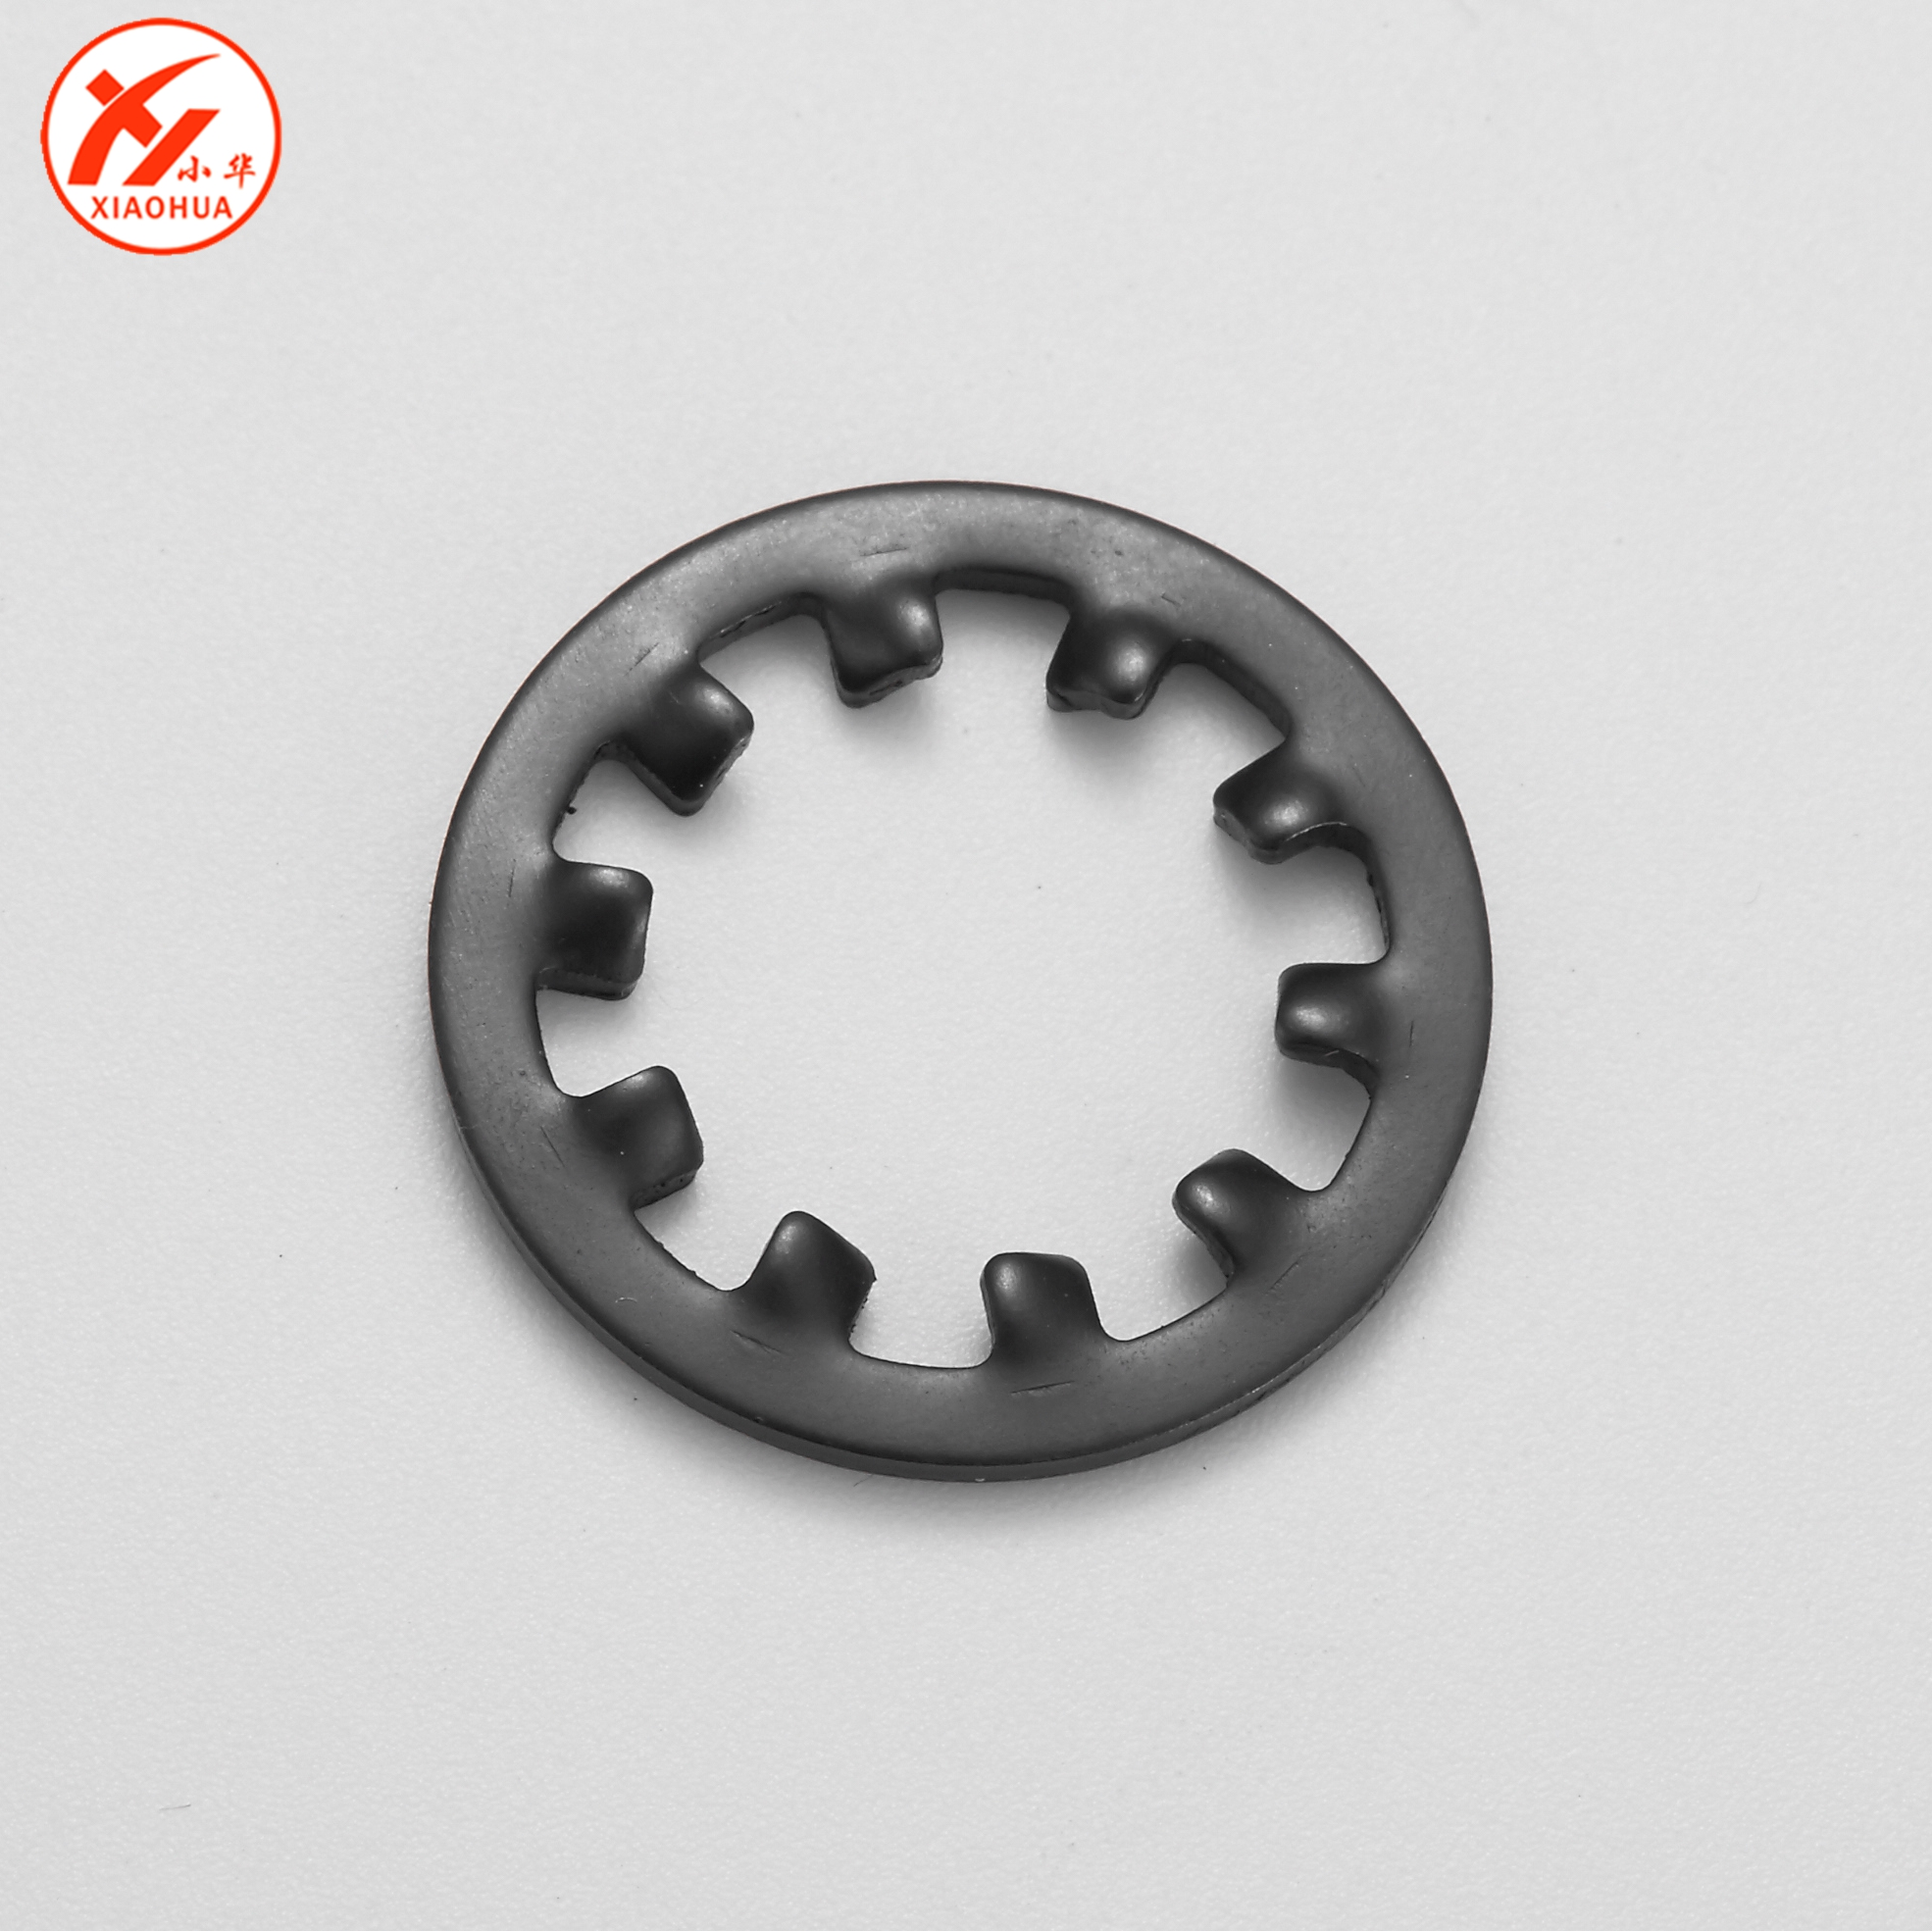 Zinc Plated External TypeA Metric DIN 6797 Type A Steel M3.5 Tooth Lock Washers 10000 pcs